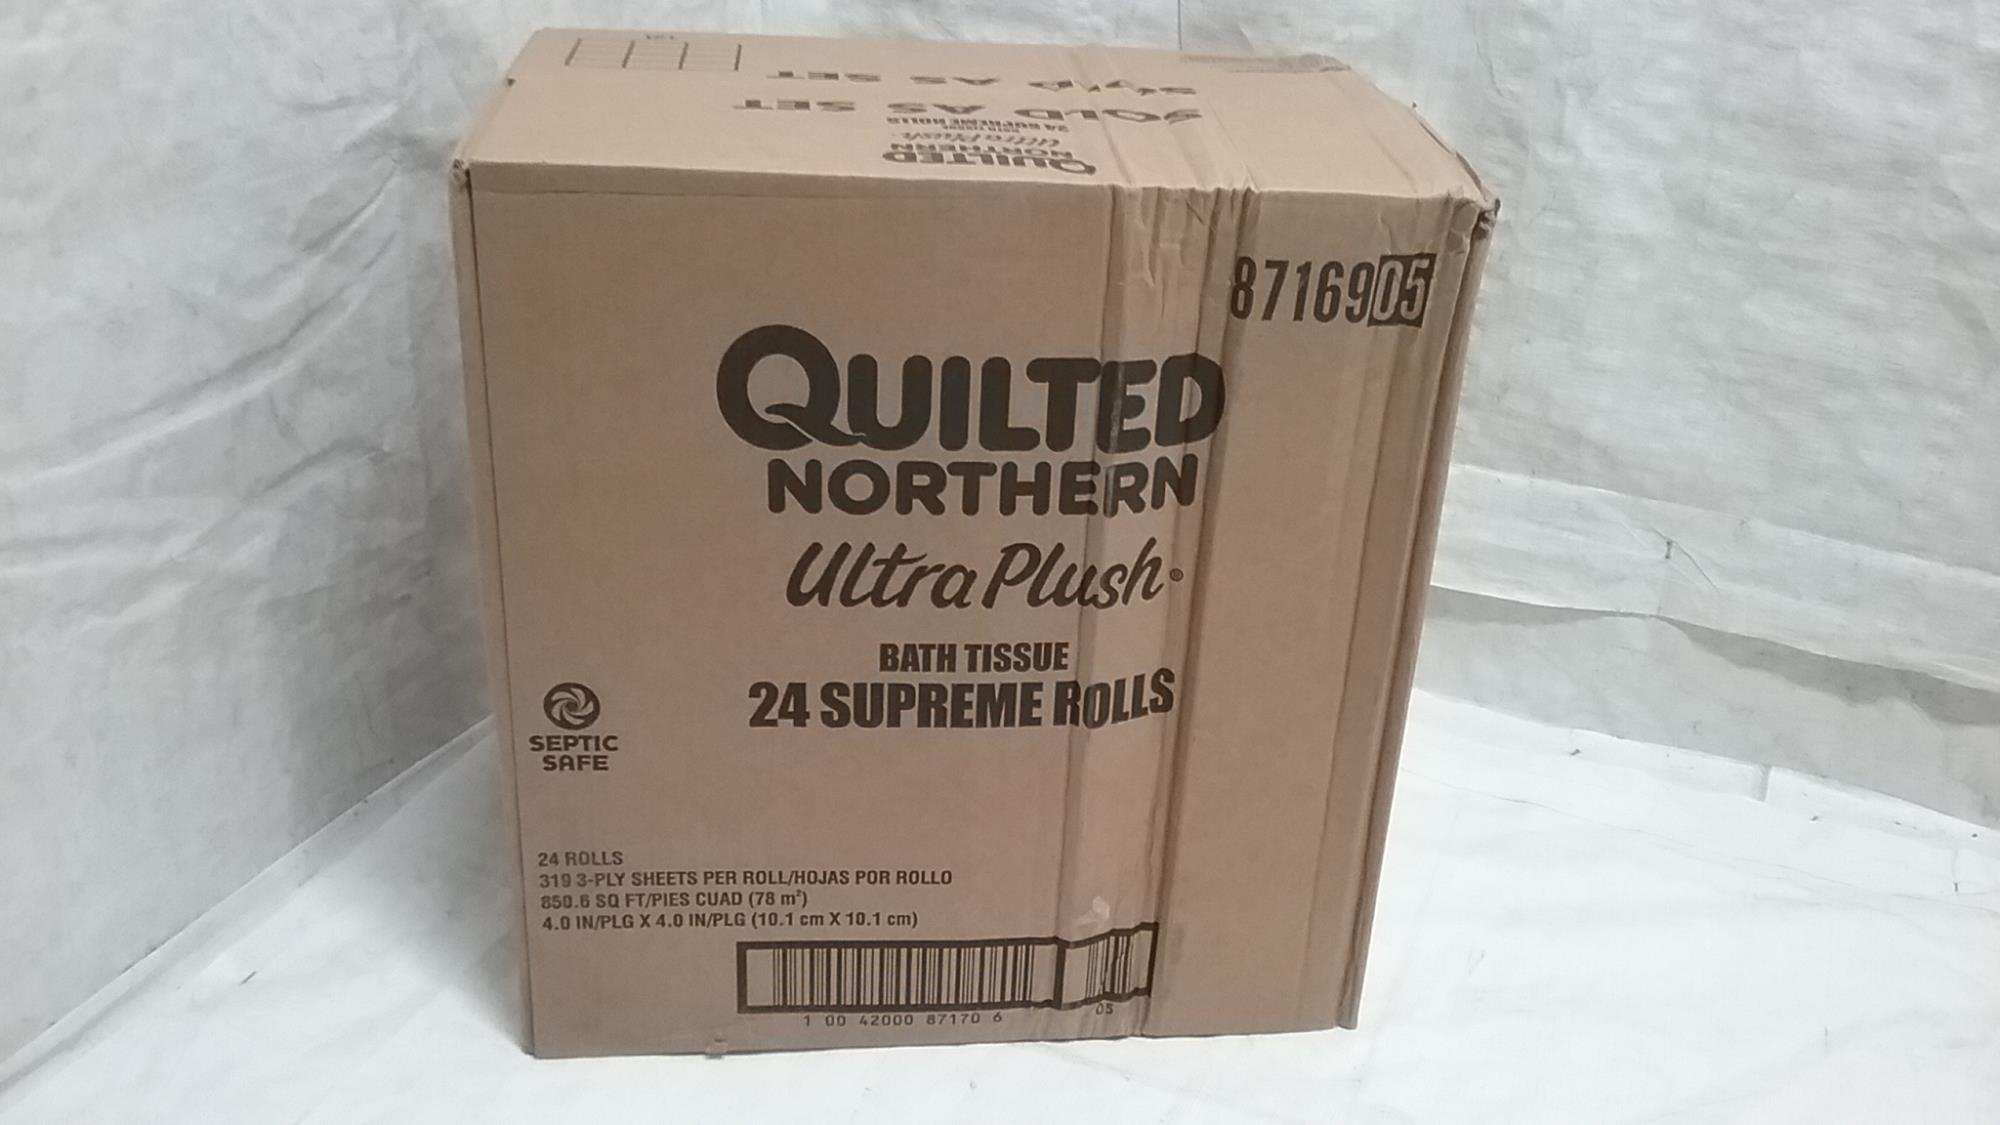 Quilted Northern Ultra Plush Toilet Paper 24 Supreme 92